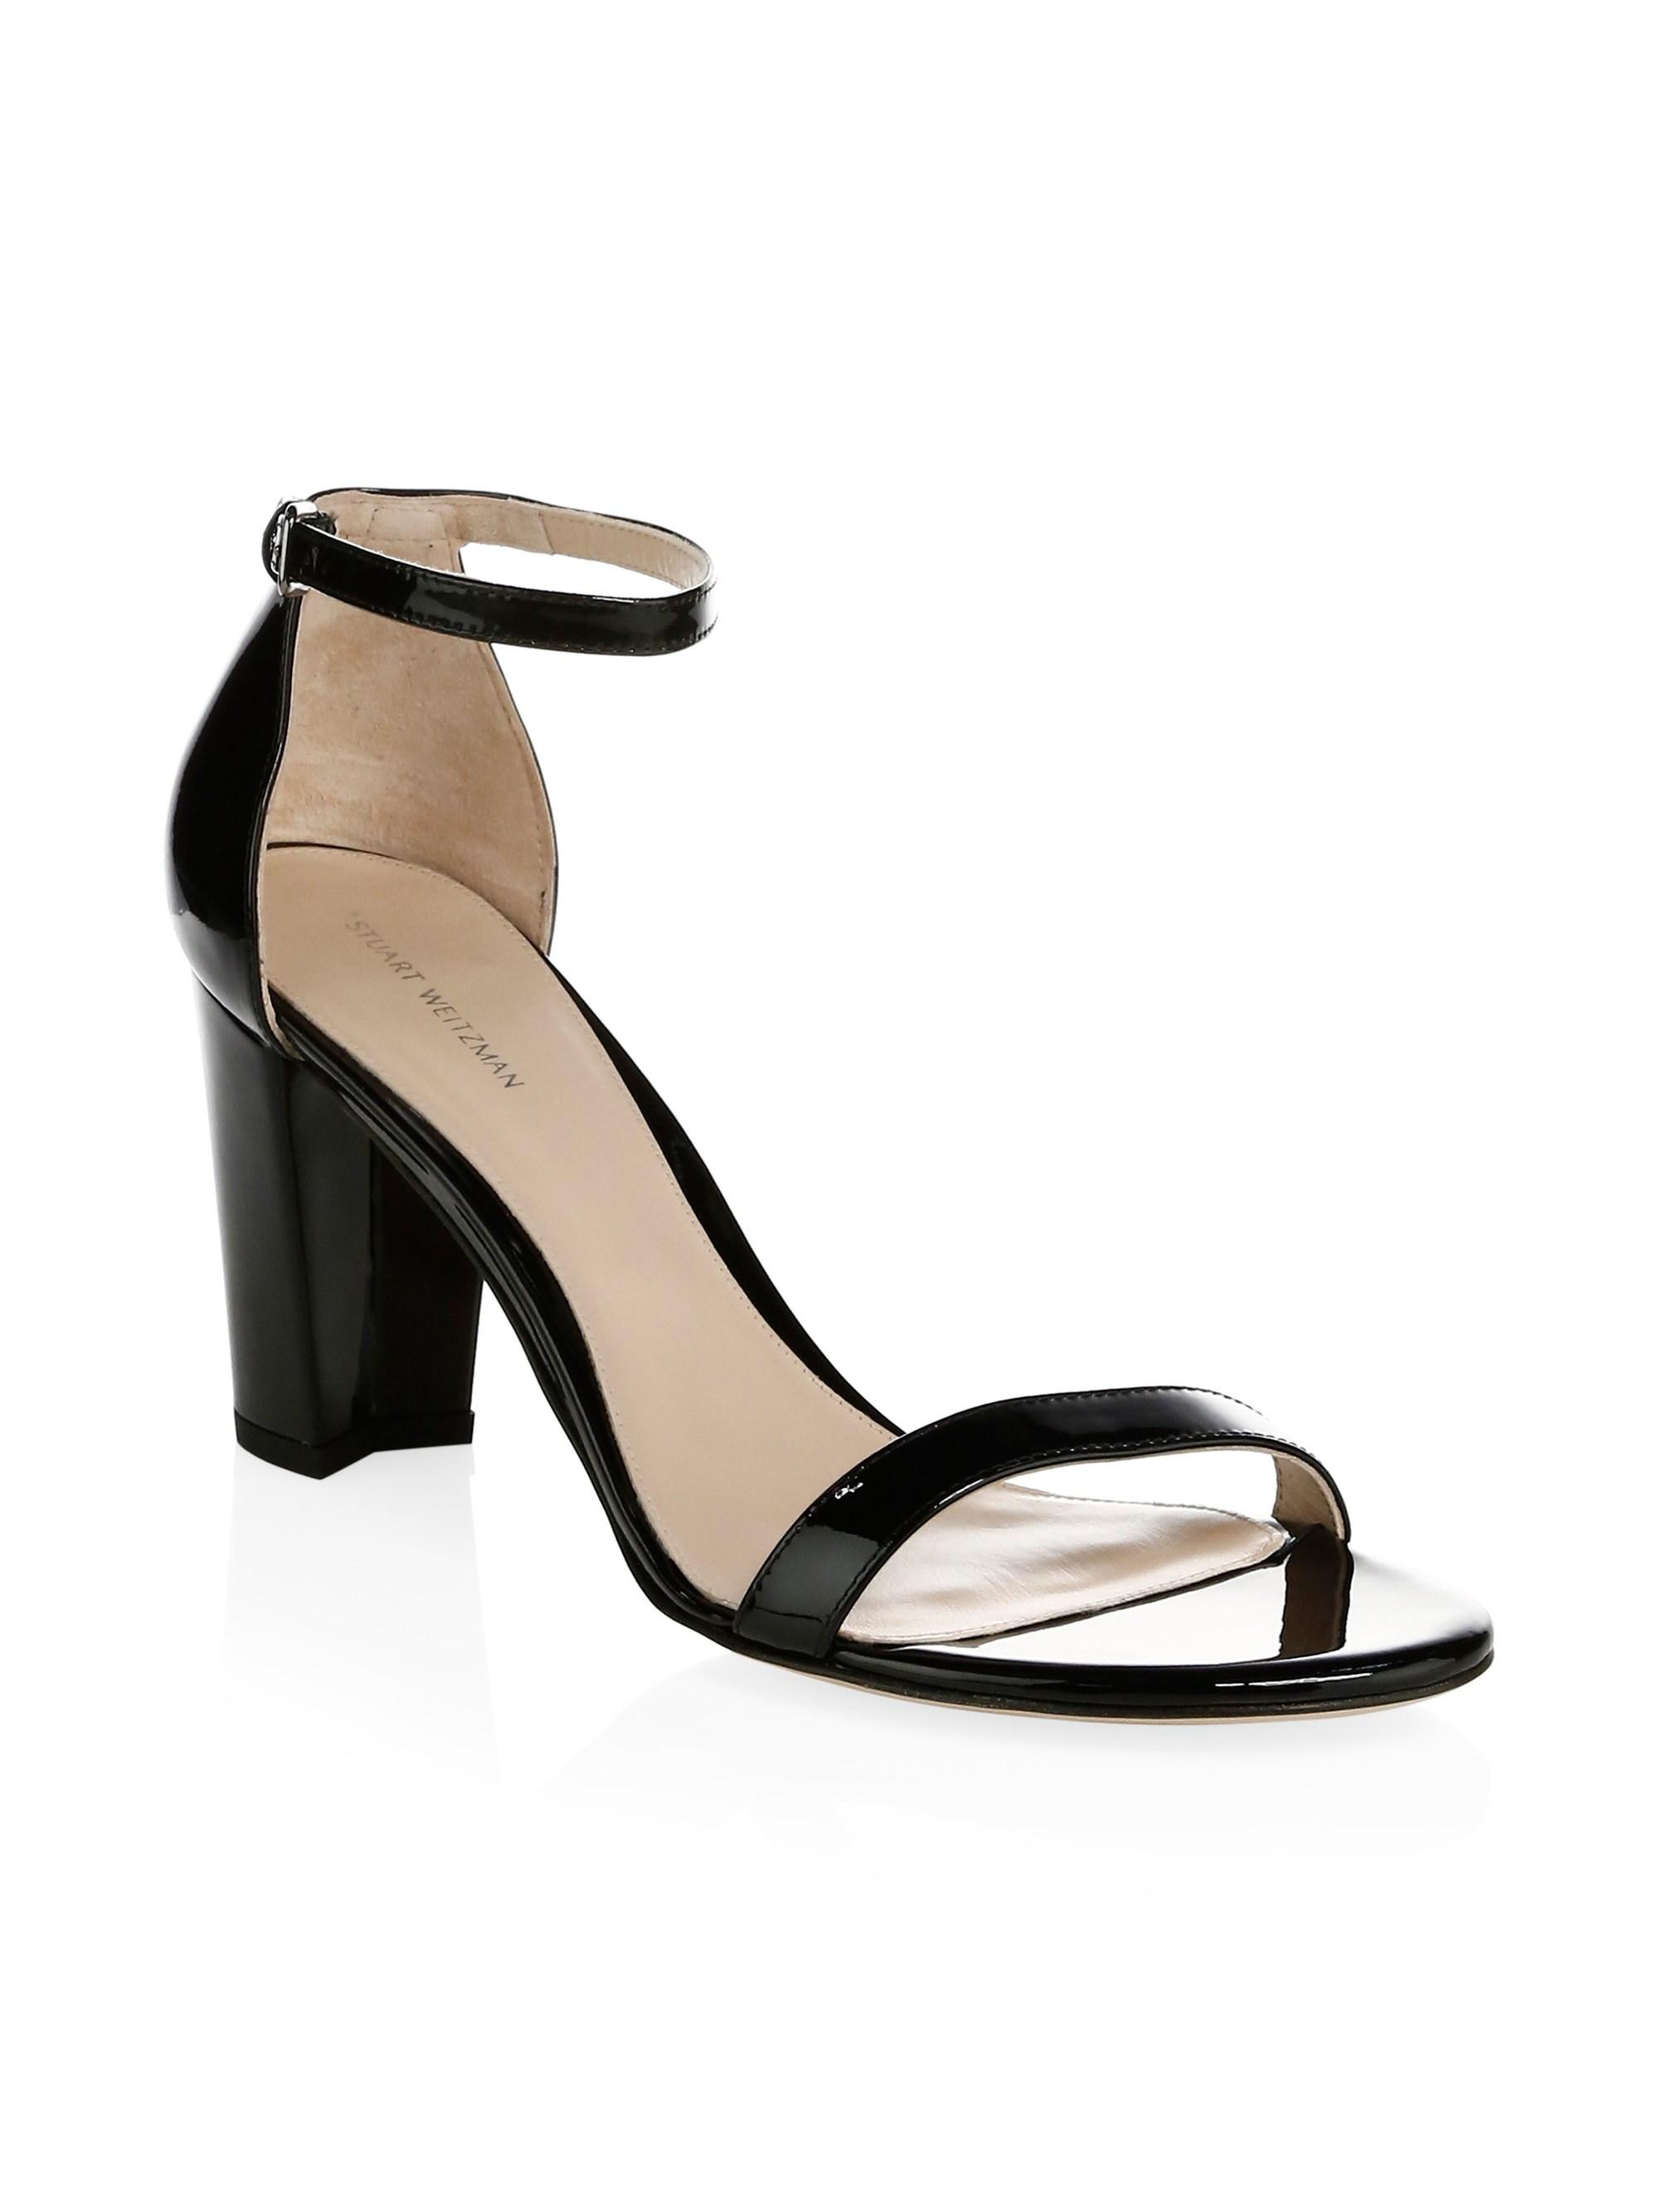 5036bbaf5bf5 Lyst - Stuart Weitzman Nearlynude Patent Leather Block Heel Sandals ...